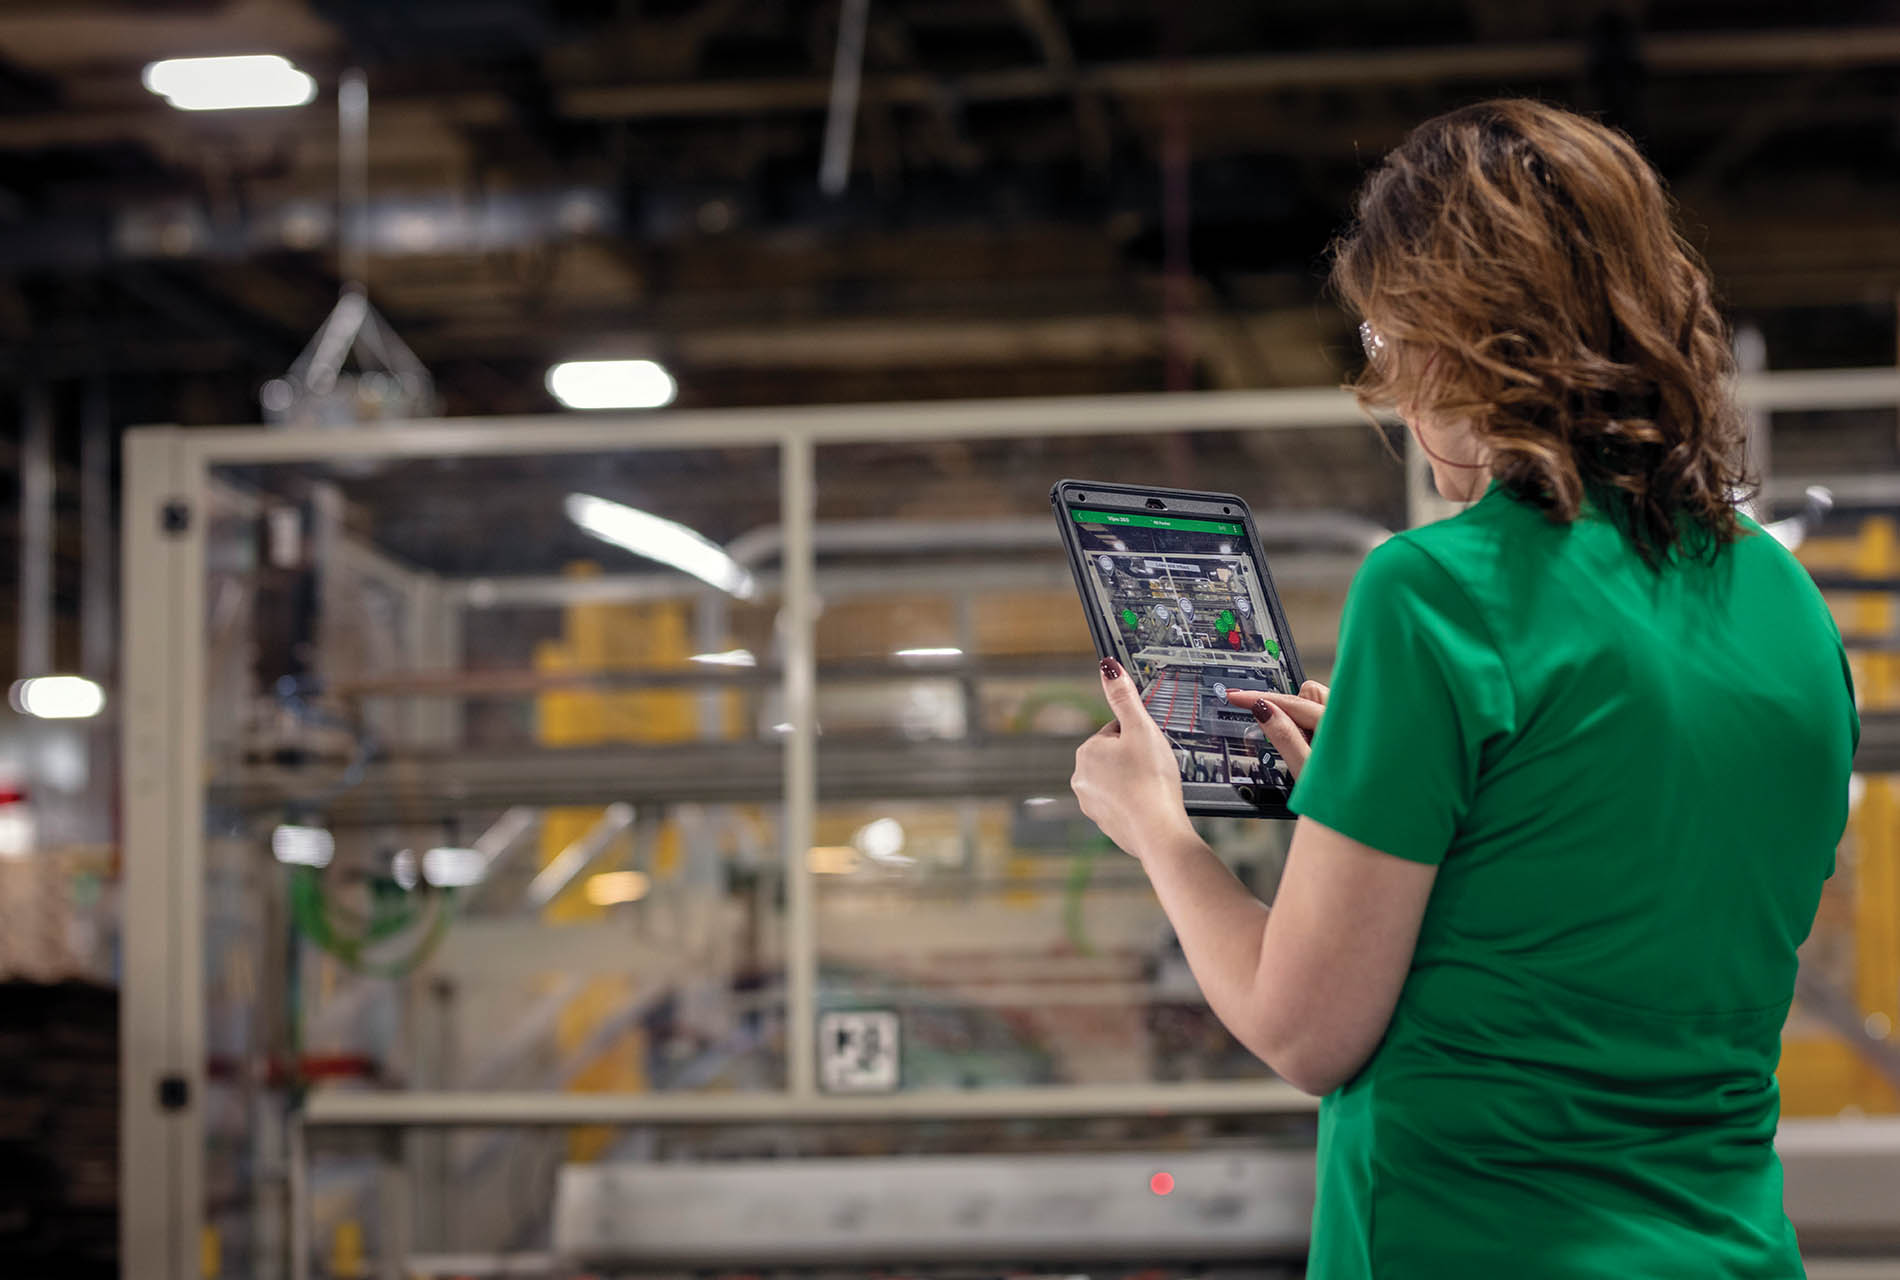 Workers at Schneider Electric's Lexington, Ky., smart factory use augmented reality to overlay machine information, which provides equipment details without exposing them to the hazard.